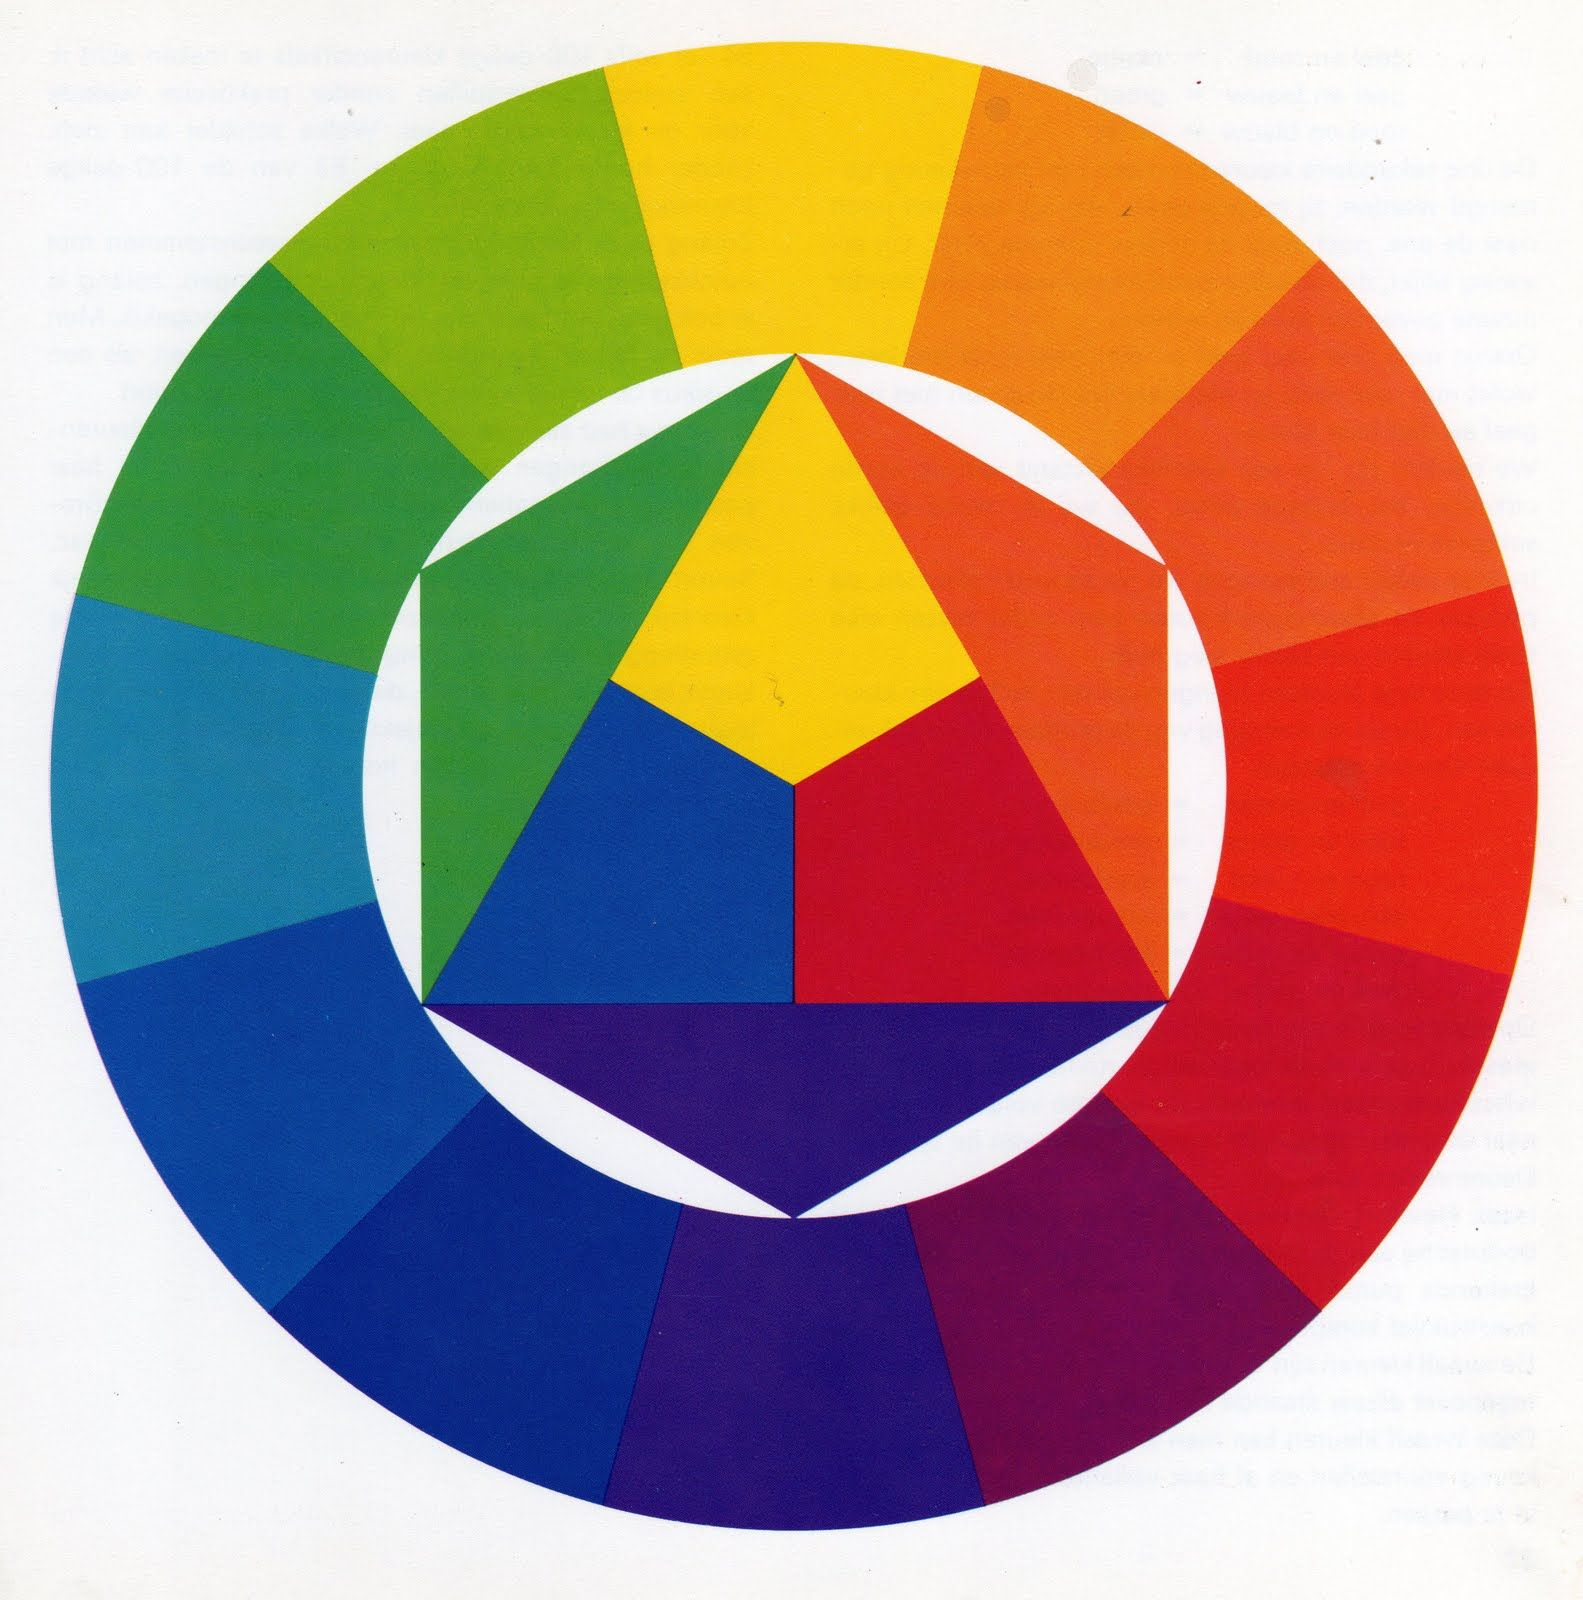 the human body consists of colour vibrations the 12